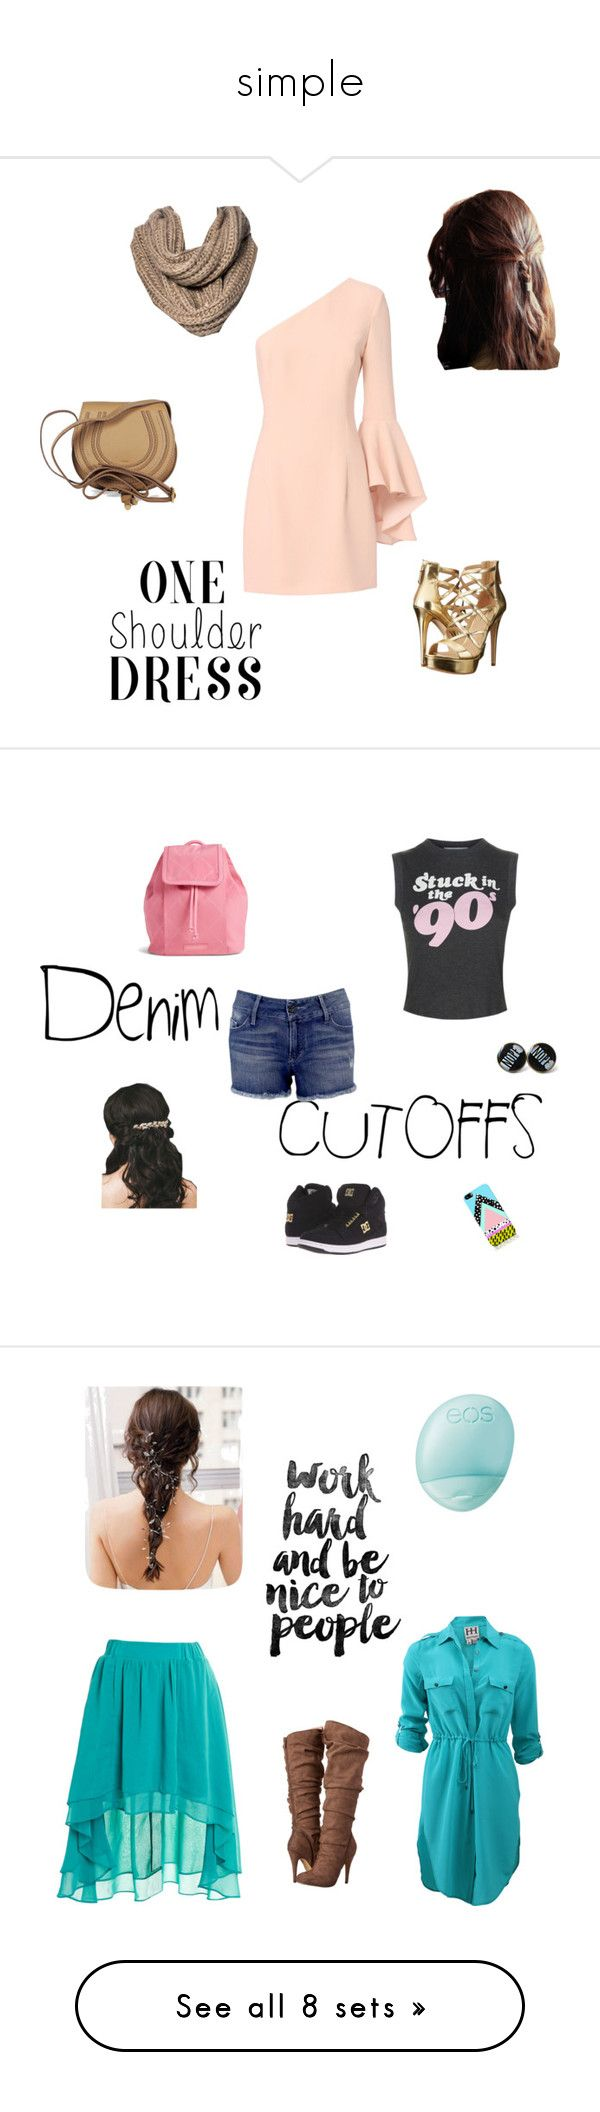 """""""simple"""" by tevy13tya ❤ liked on Polyvore featuring art, jeanshorts, denimshorts, cutoffs, beauty, Staring At Stars, Haute Hippie, Eos and Michael Antonio"""